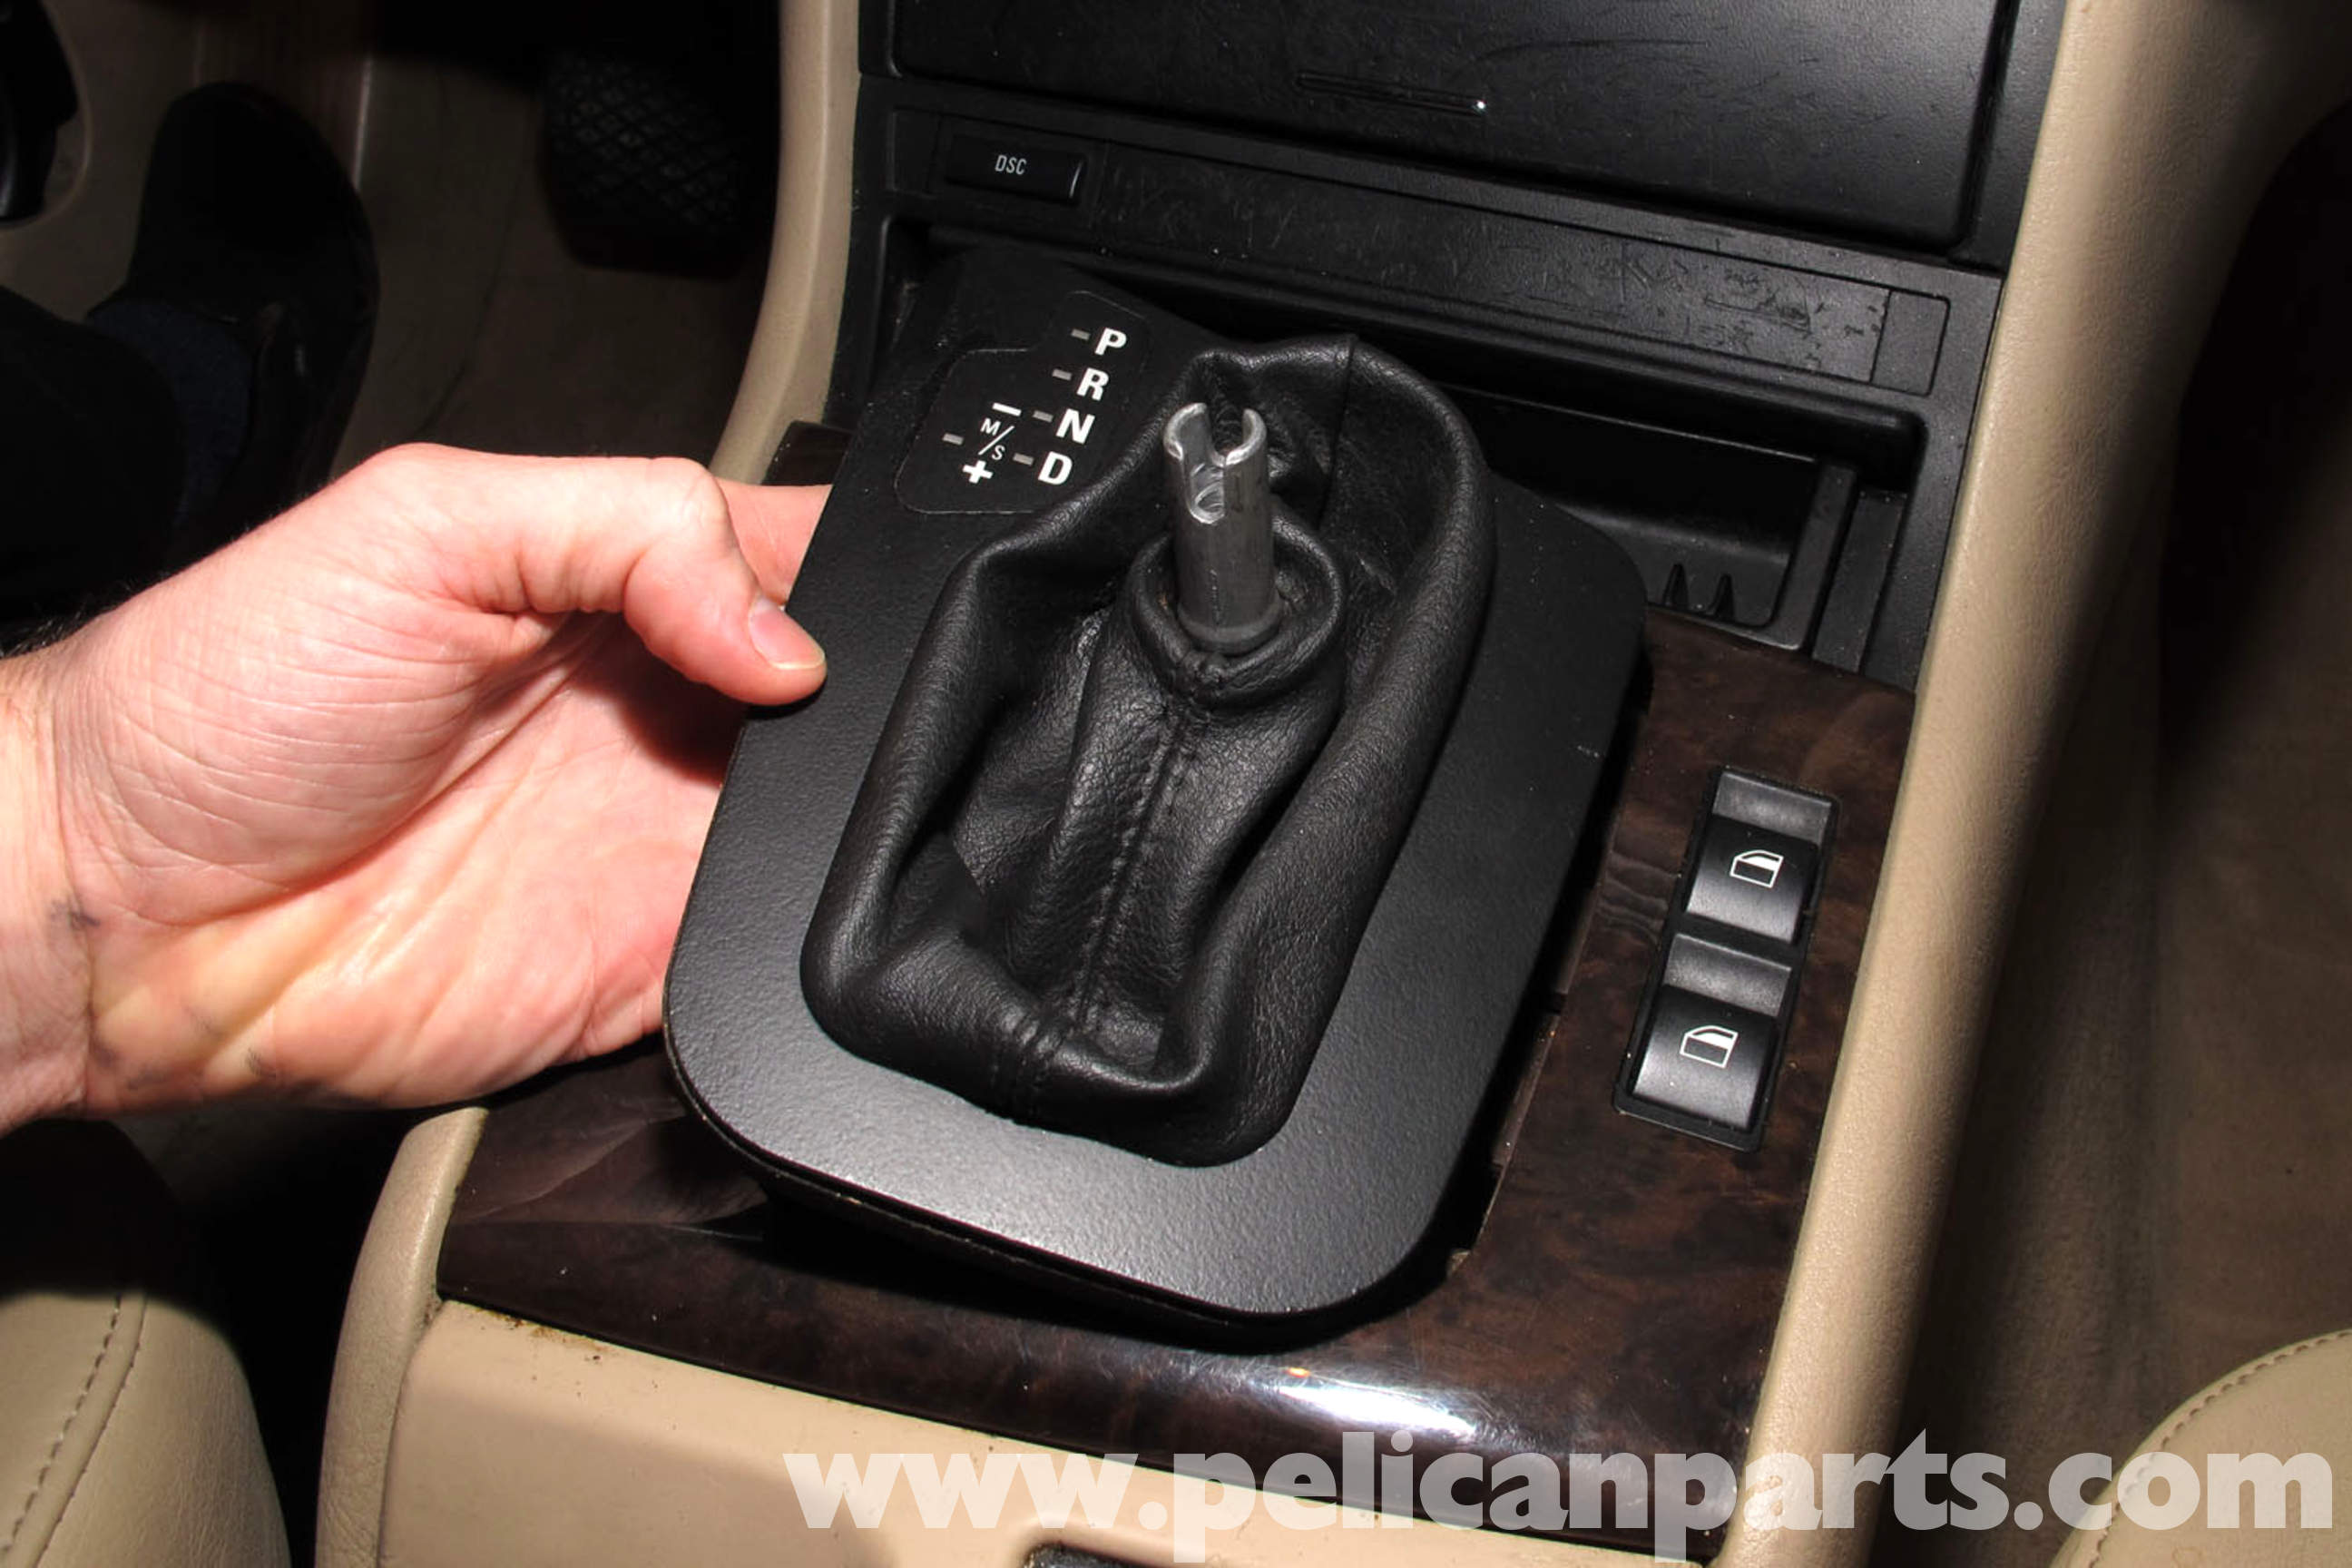 Bmw E46 Gear Shift Boot Replacement 325i 2001 2005 Stick Shifting Gears Illustration Diagram Large Image Extra